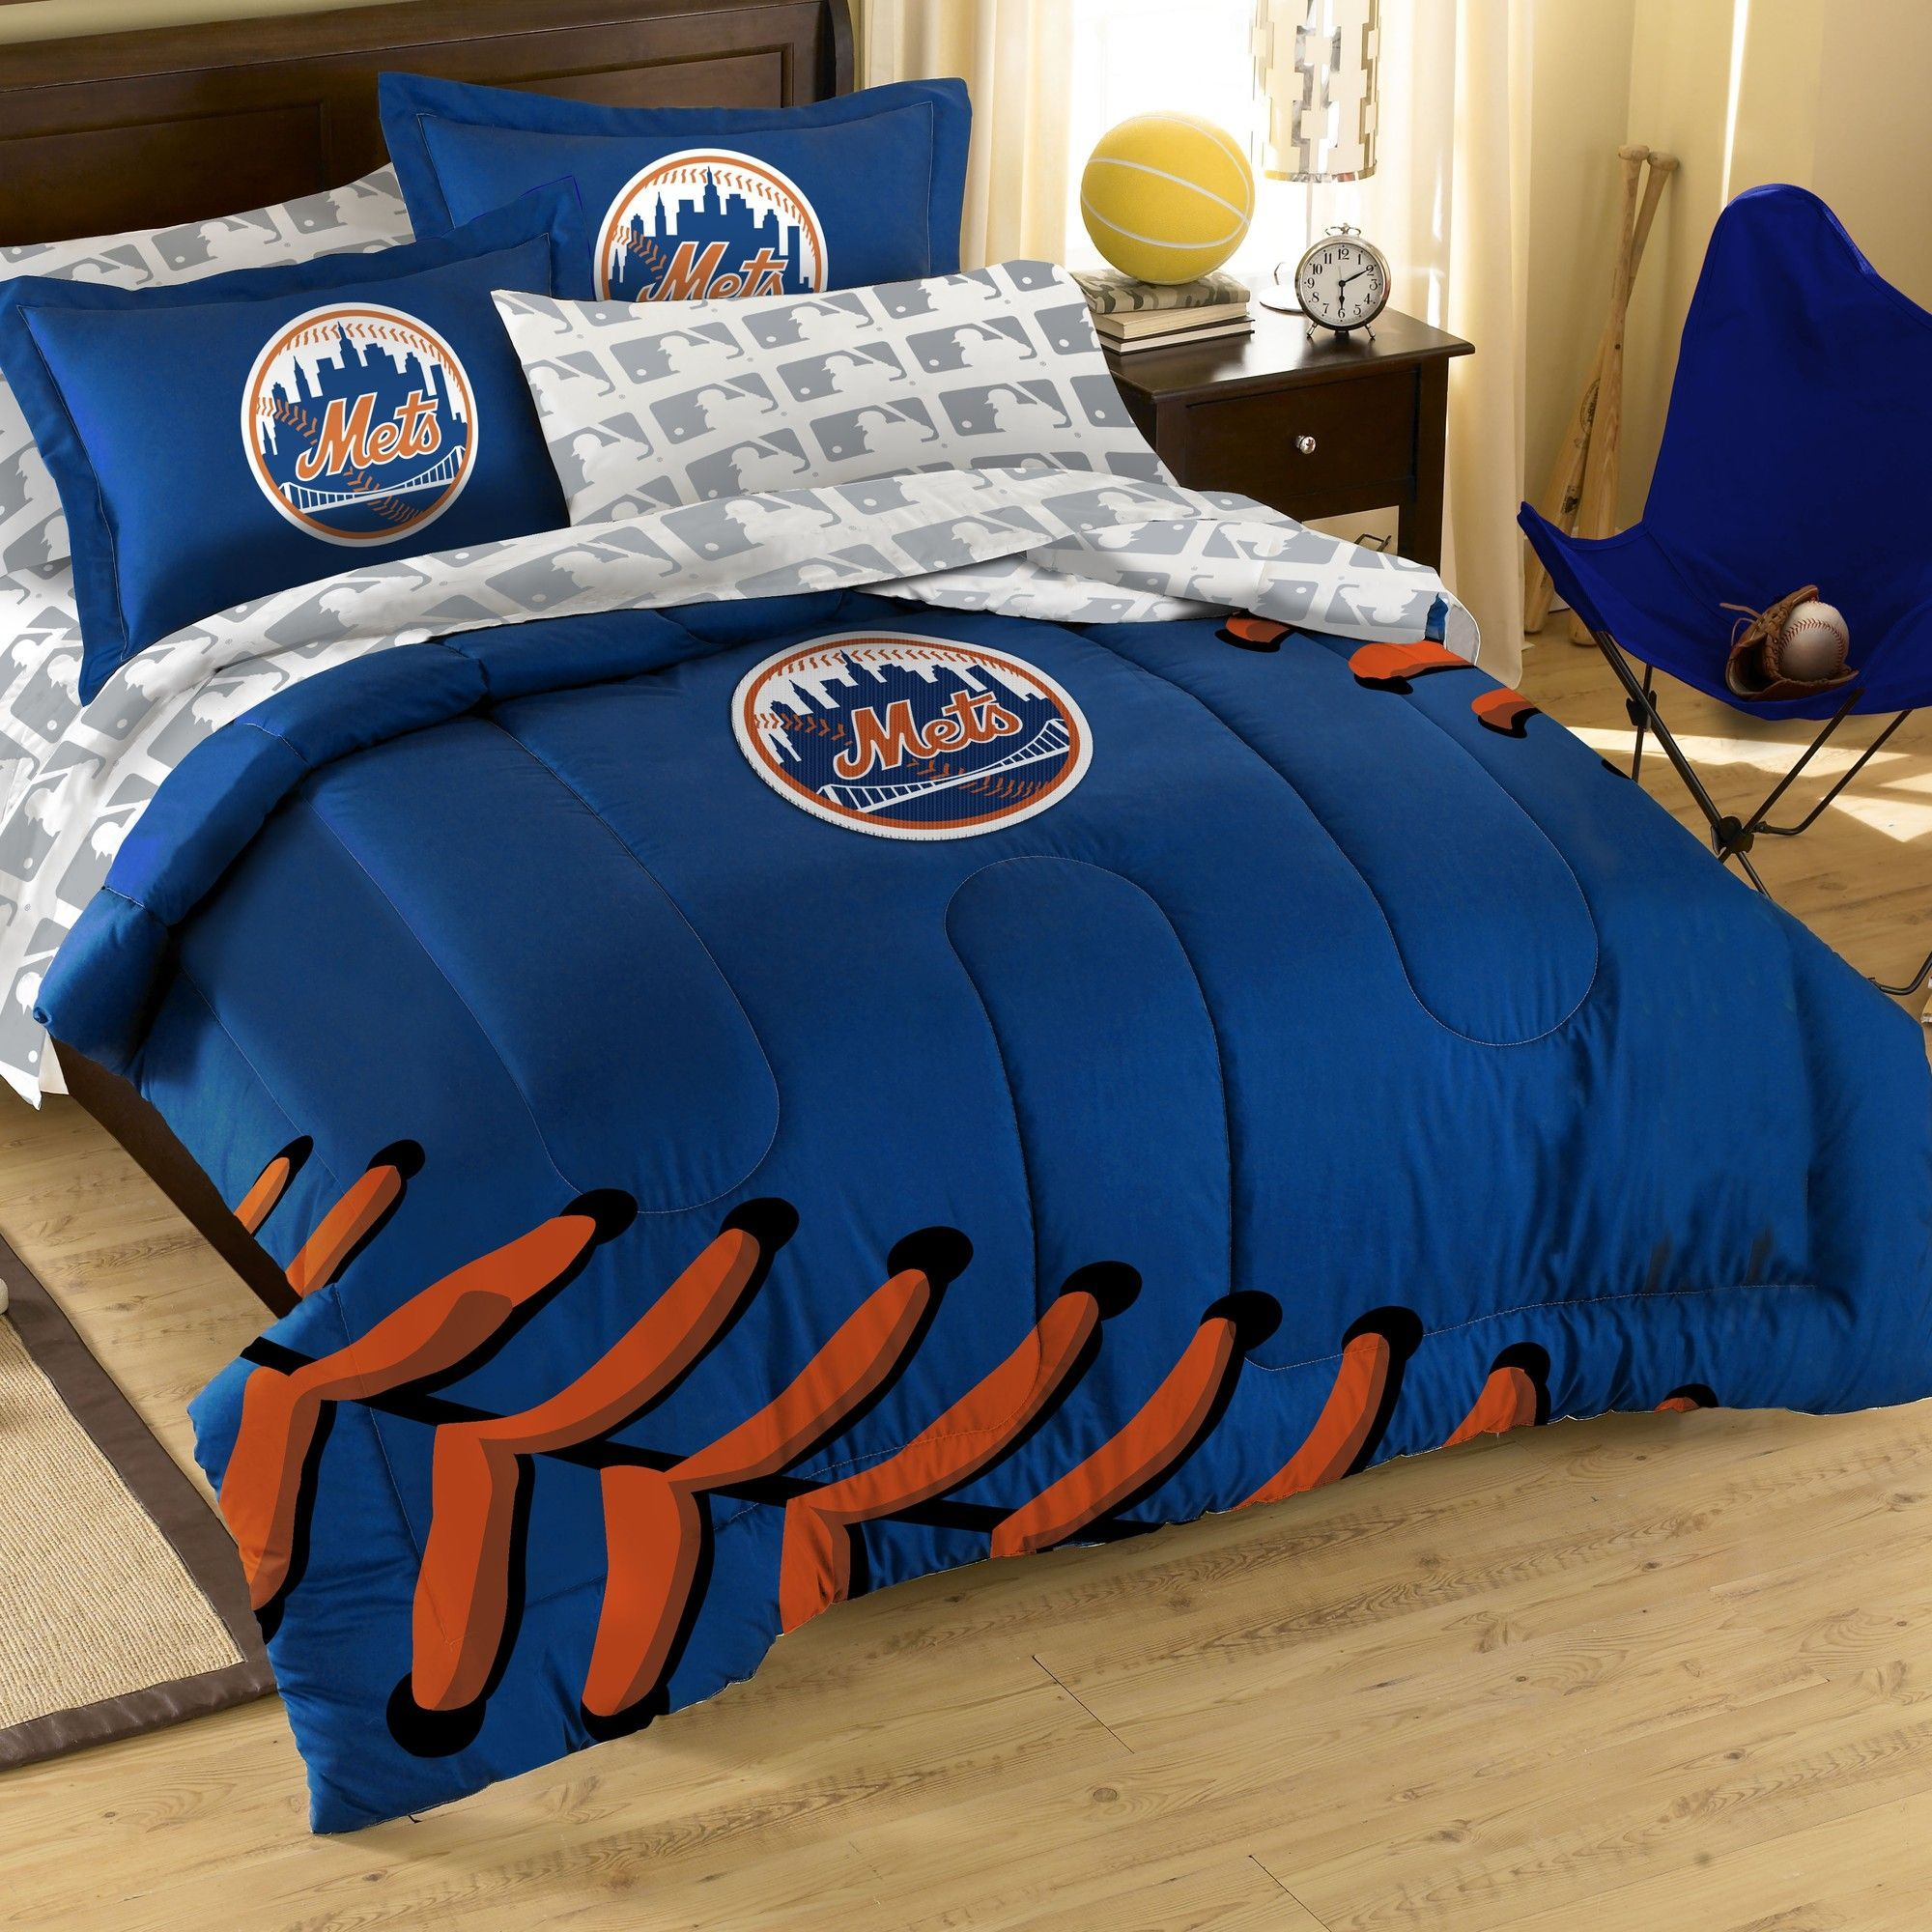 MLB New York Mets Embroirdered Full Comforter Set. MLB New York Mets Embroirdered Full Comforter Set   Products